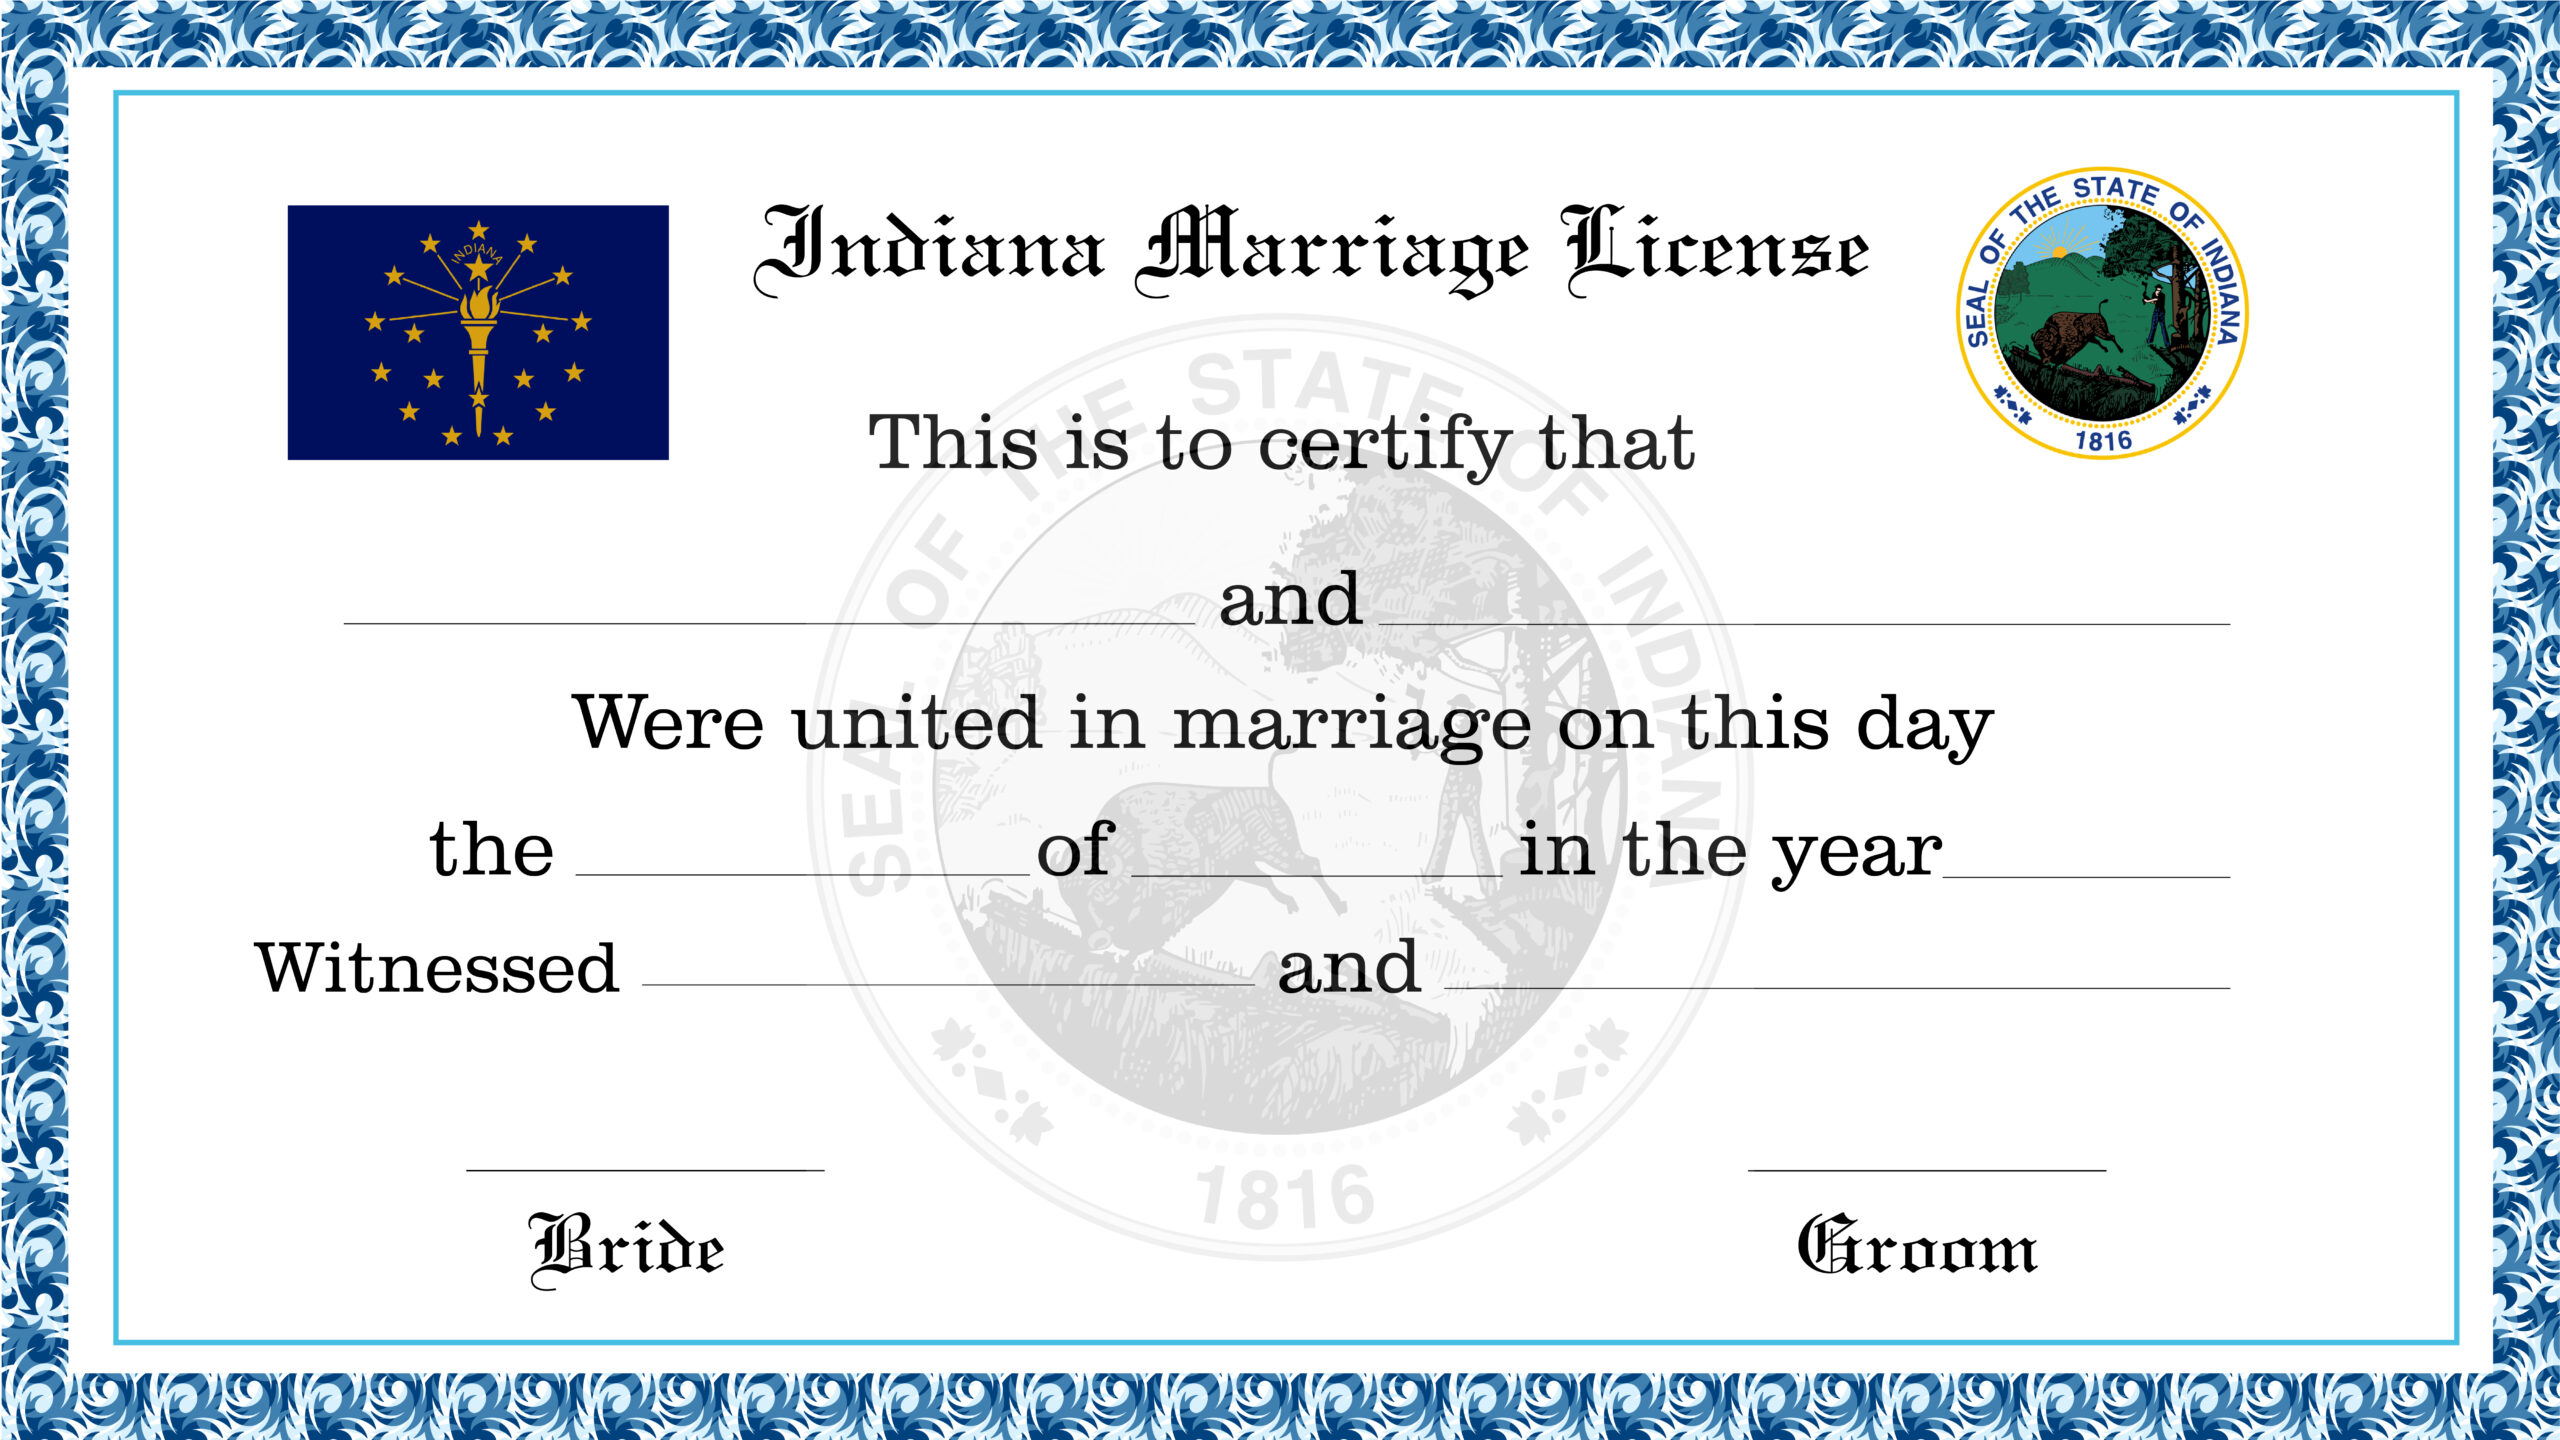 Sample Indiana Marriage License